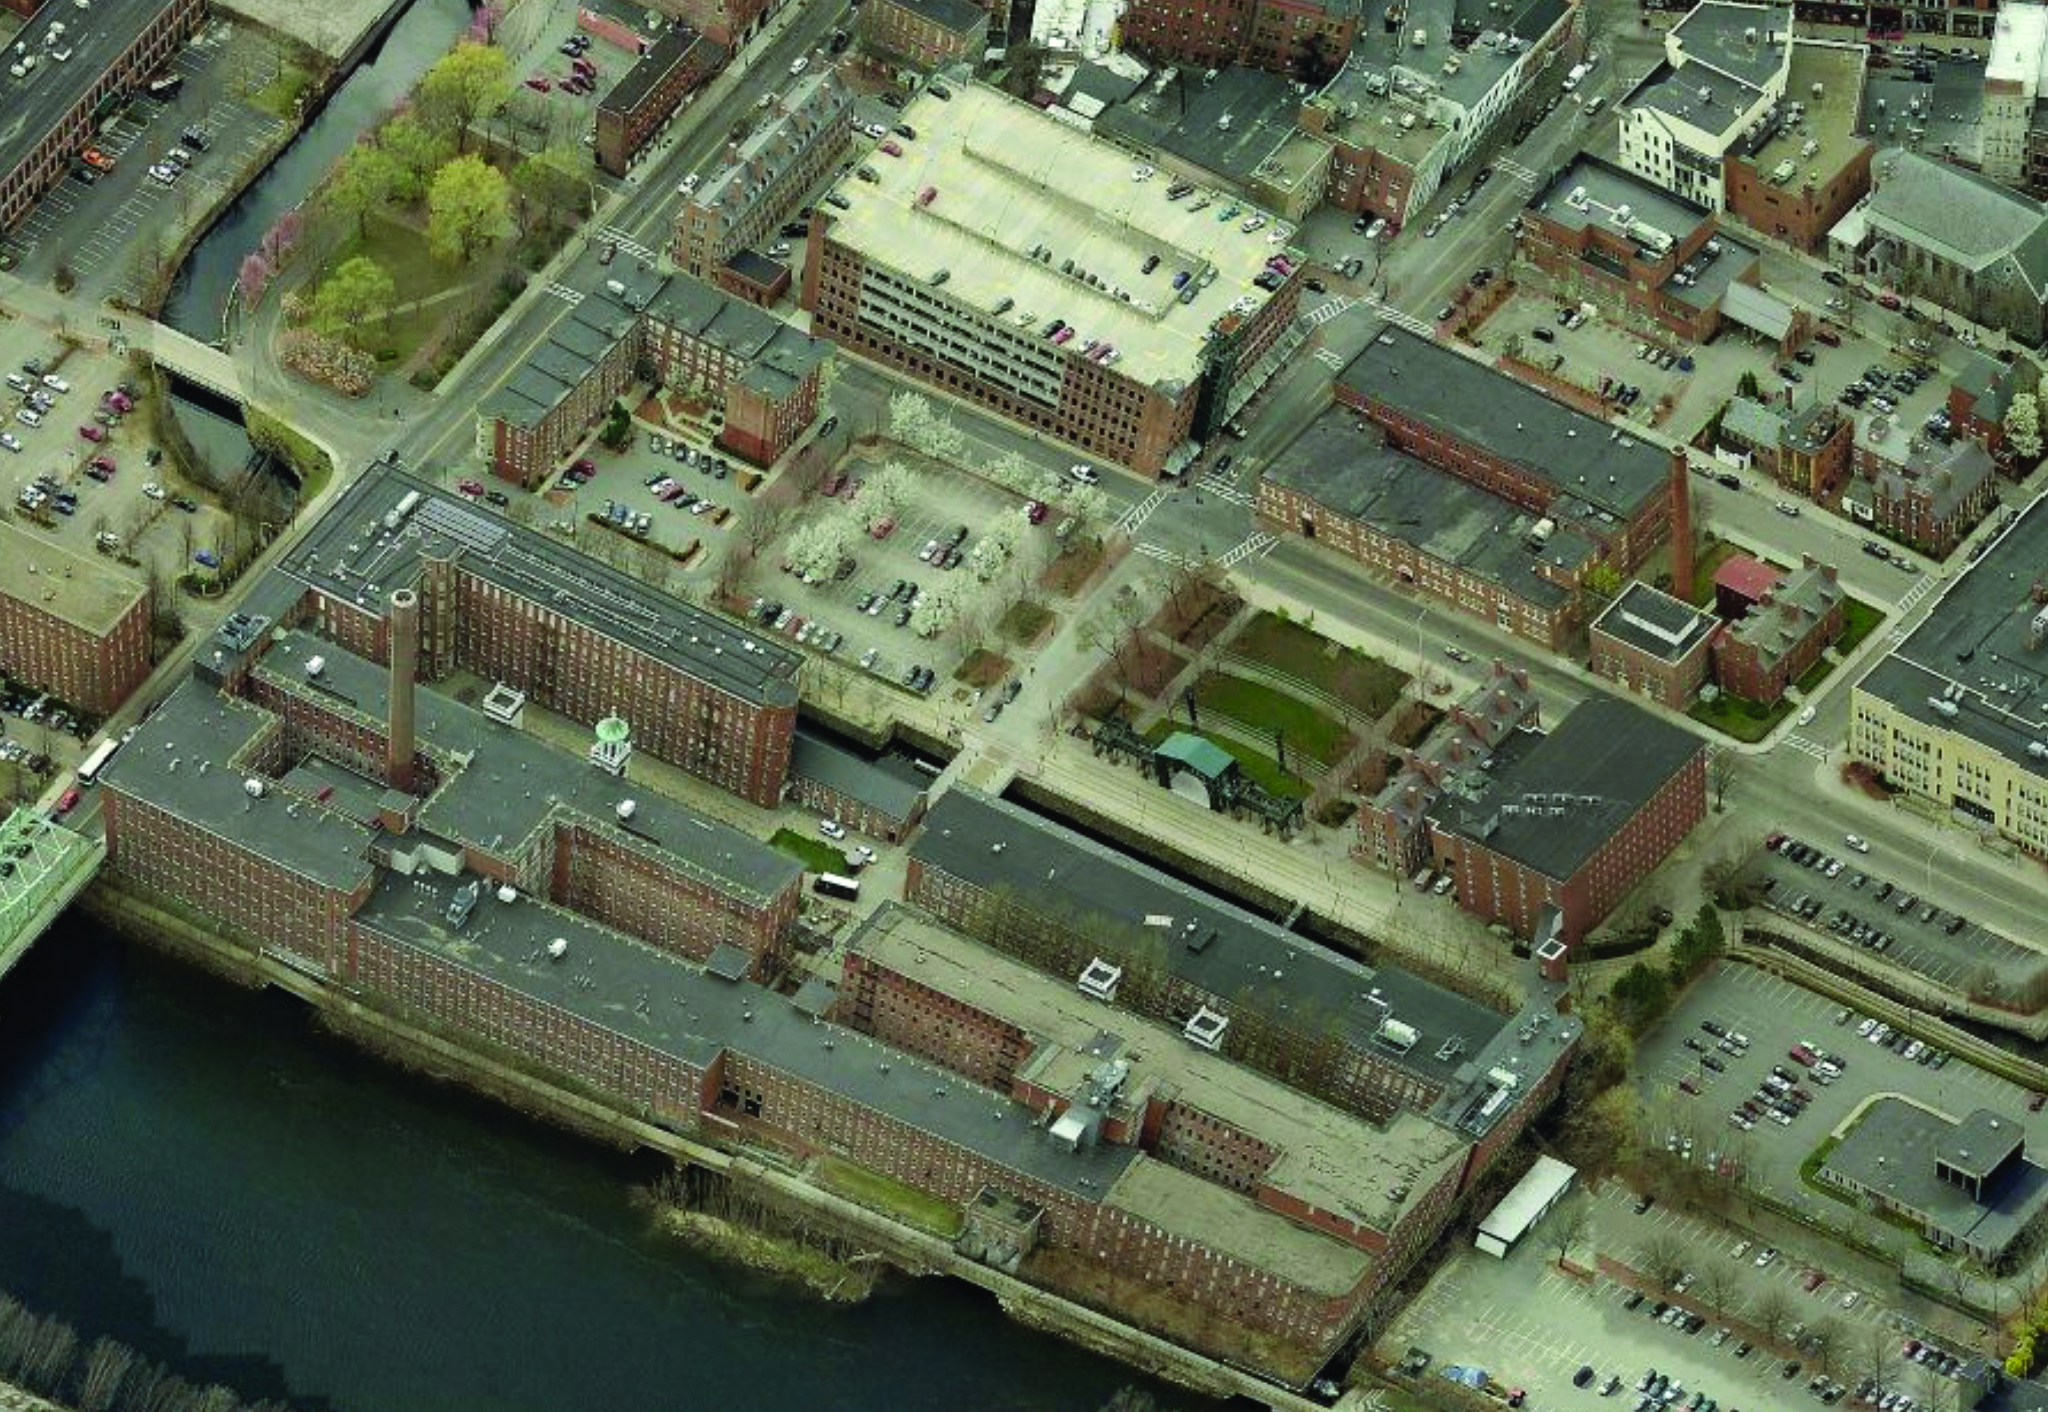 Lowell, MA, dedicated empty spaces in its municipal parking structures (top of image) to serve new apartments in rehabilitated buildings (bottom of image).   (Photo credit: Bing Maps)